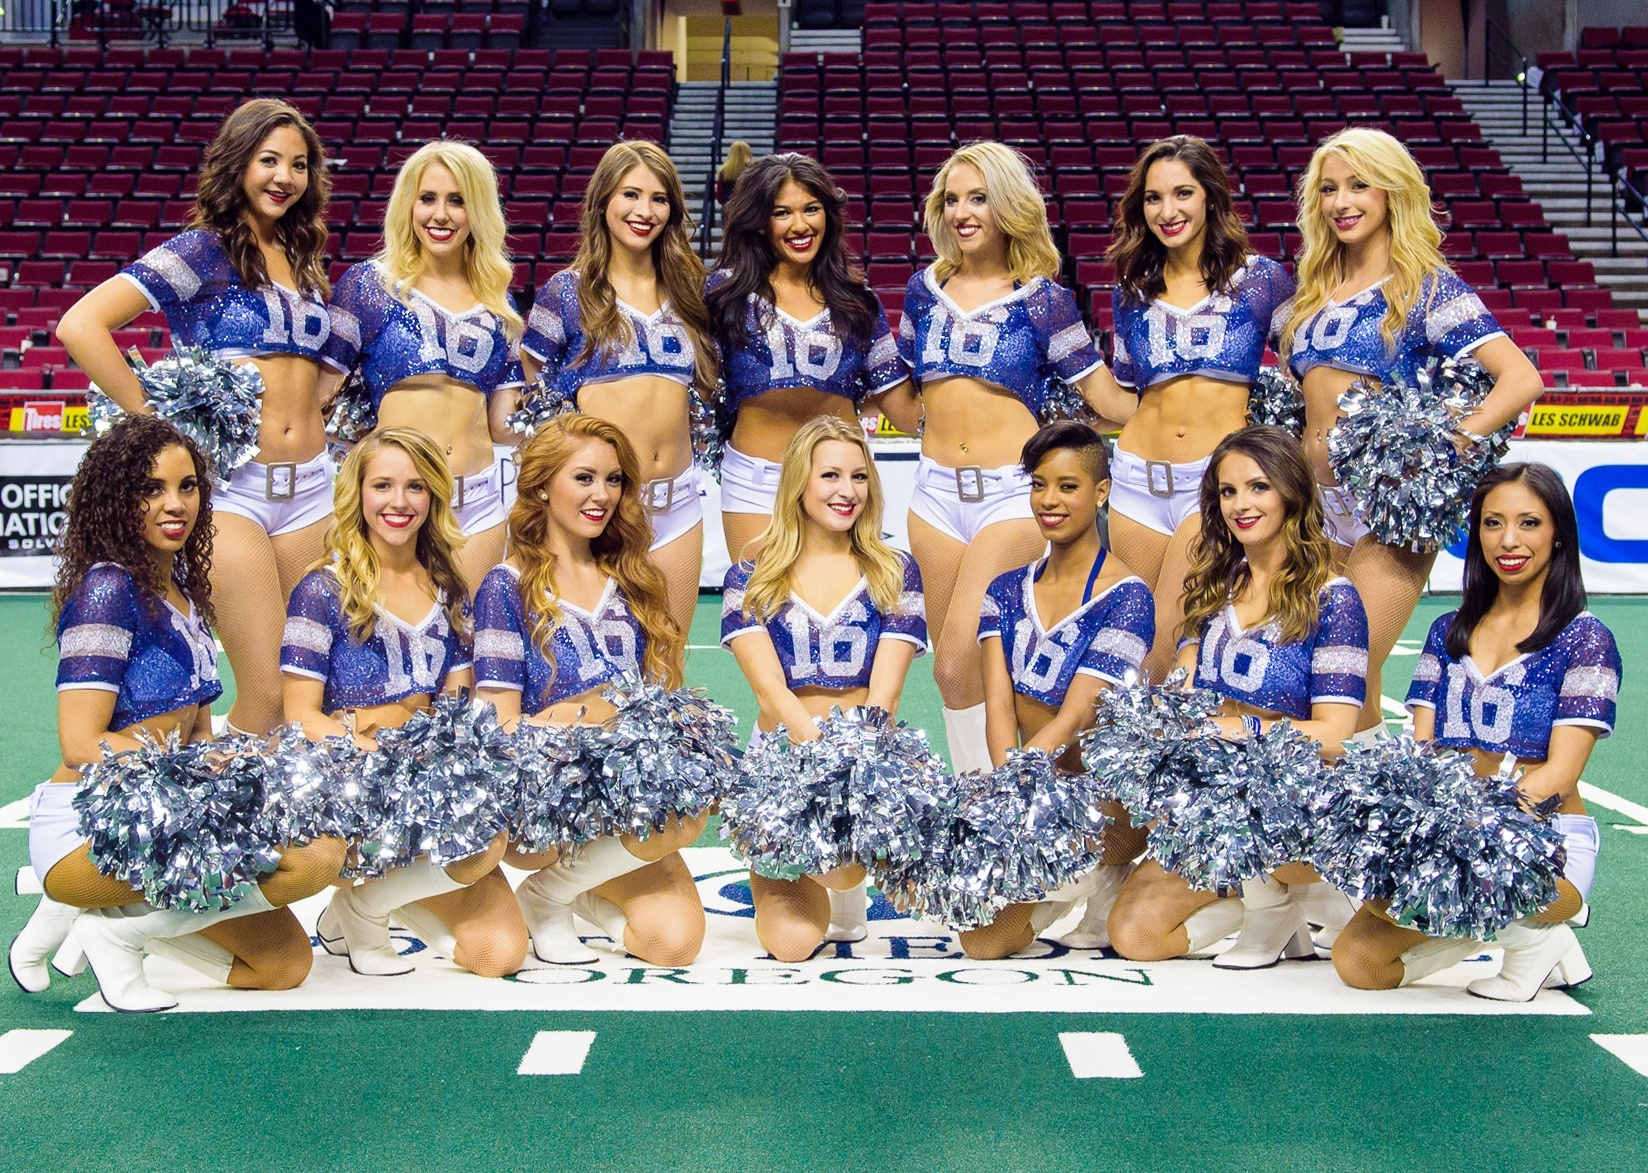 Portland Steel Cheerleaders wearing The Sparkle Jersey